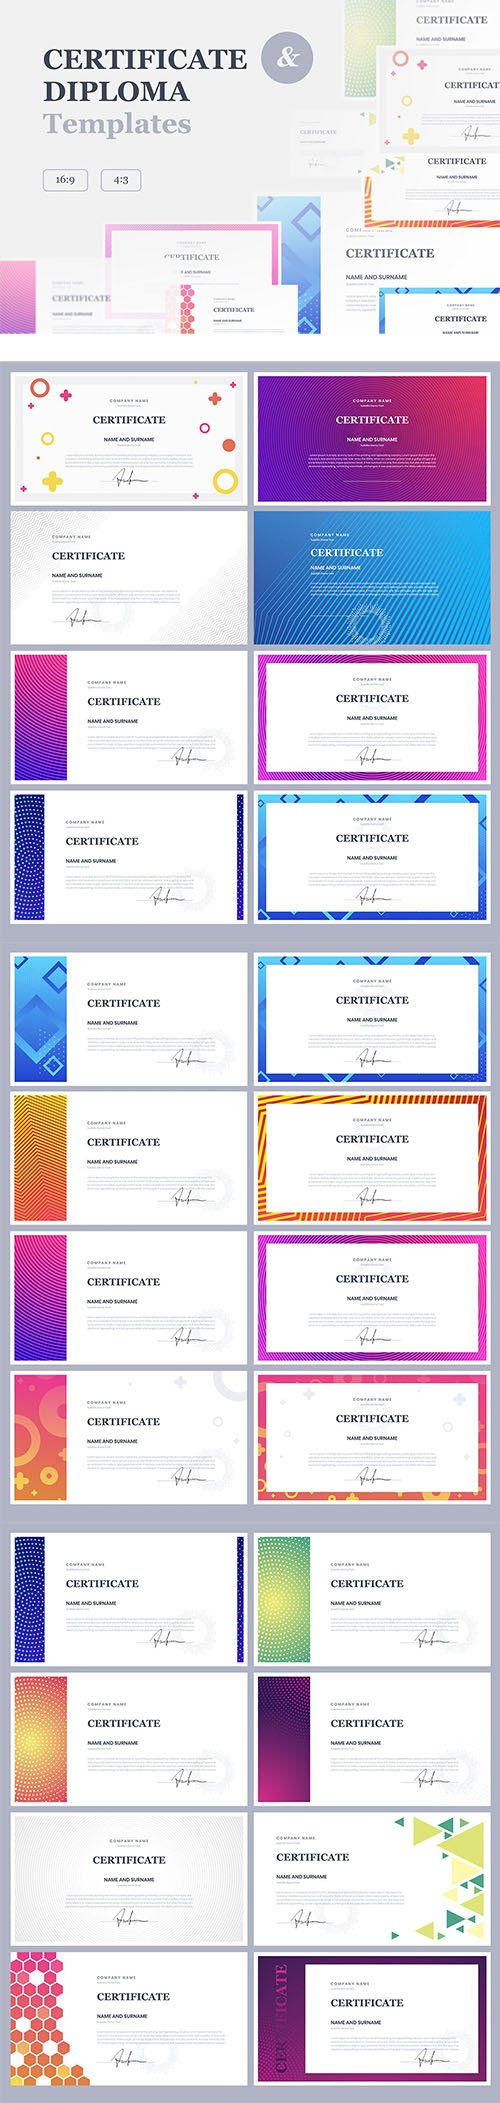 Certificate & Diploma Powerpoint, Keynote and Google Slides